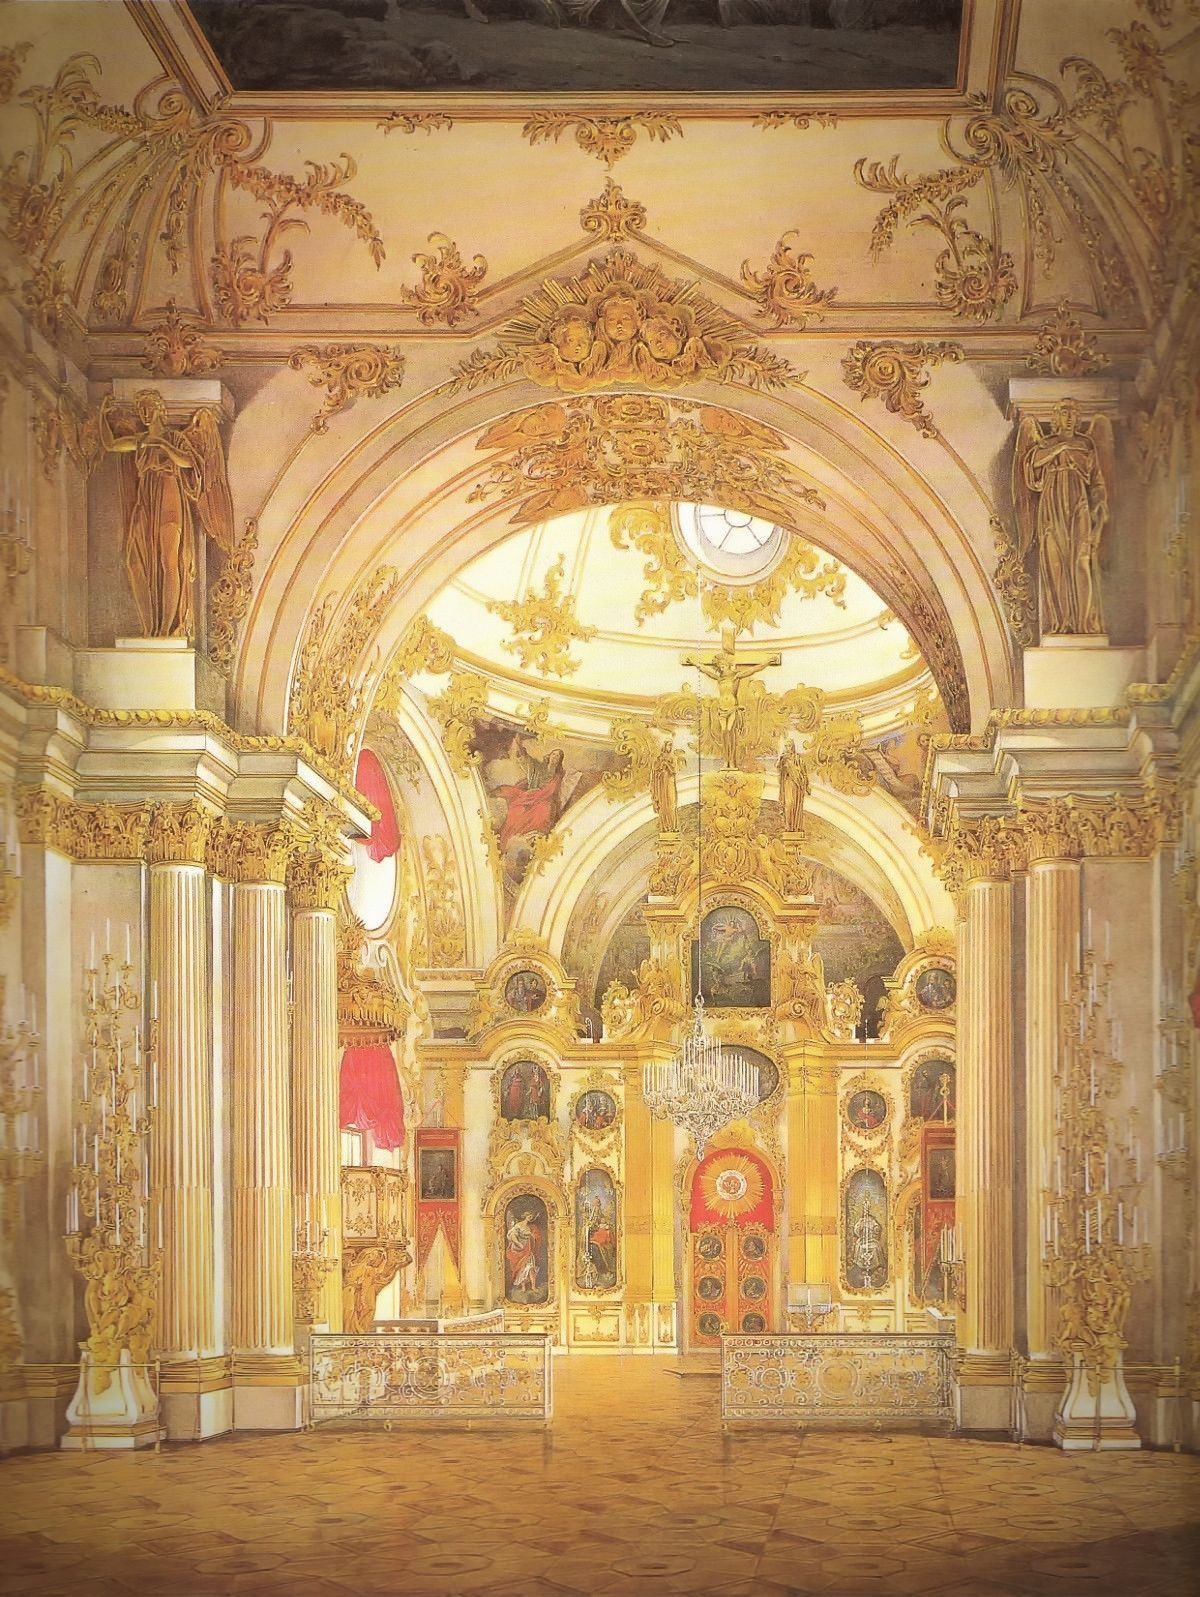 40 Views Inside the Winter Palace of Imperial Russia – 5-Minute History